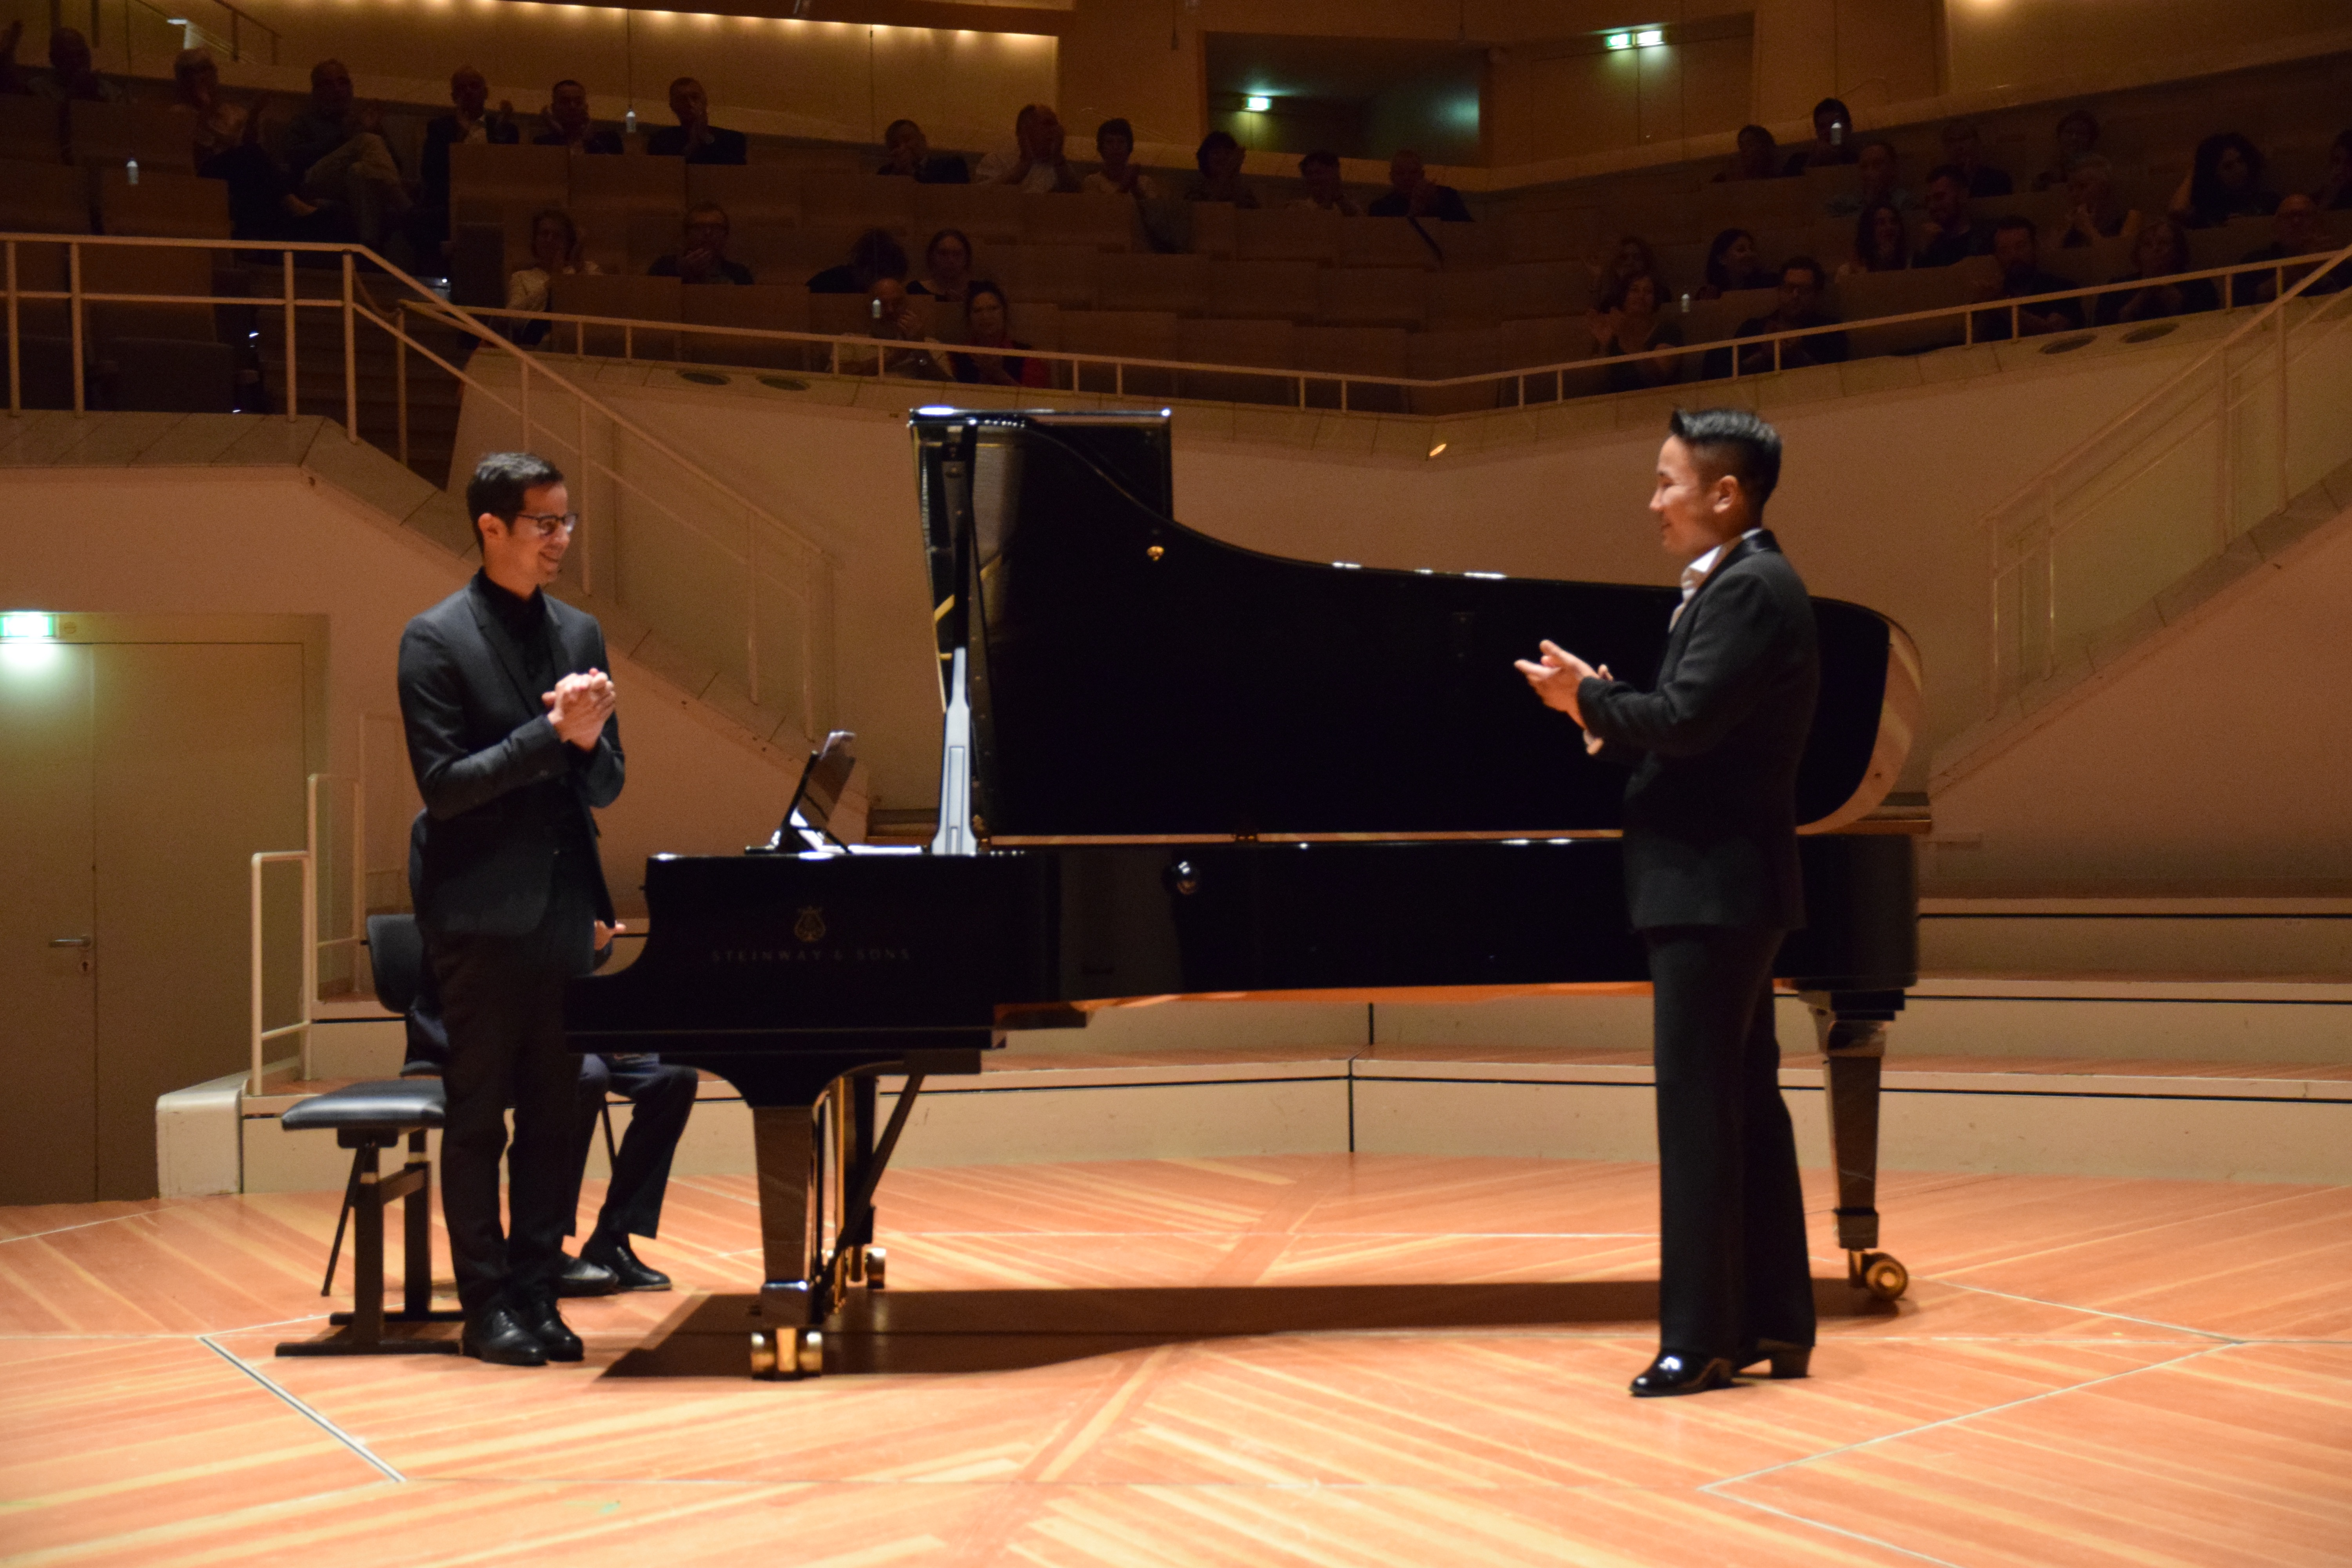 berliner music competition 27